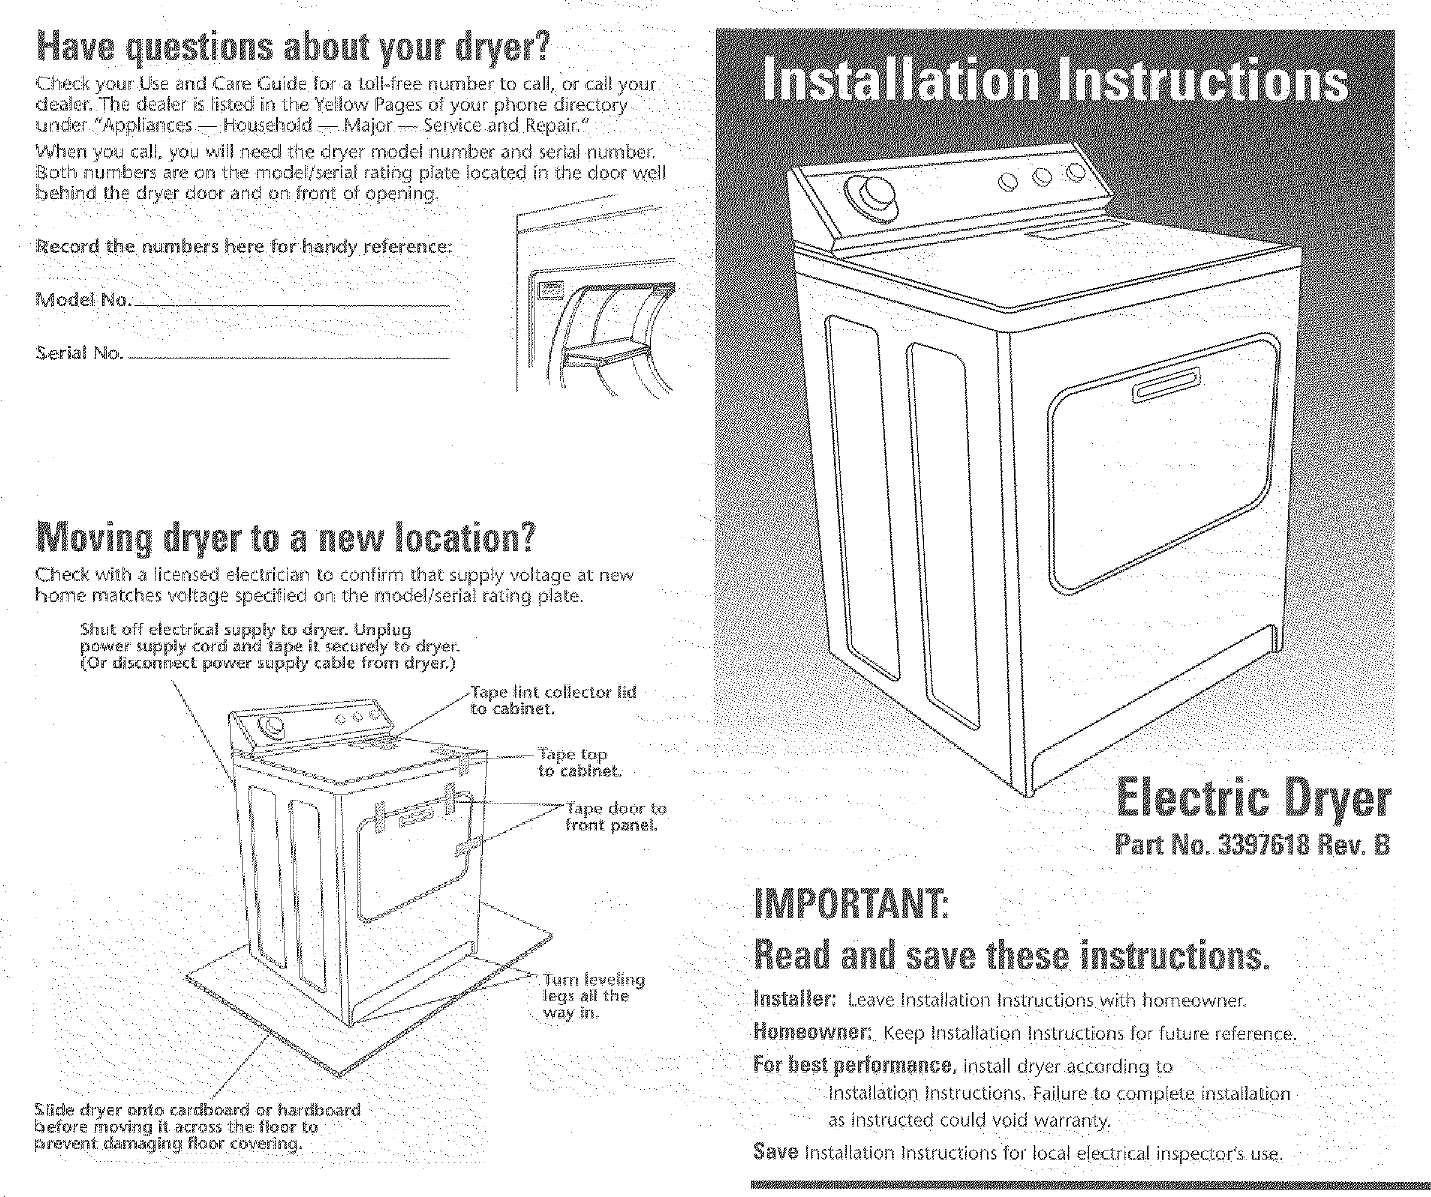 Whirlpool Leq8000jq0 User Manual Dryer Manuals And Guides L0401388 Schematic